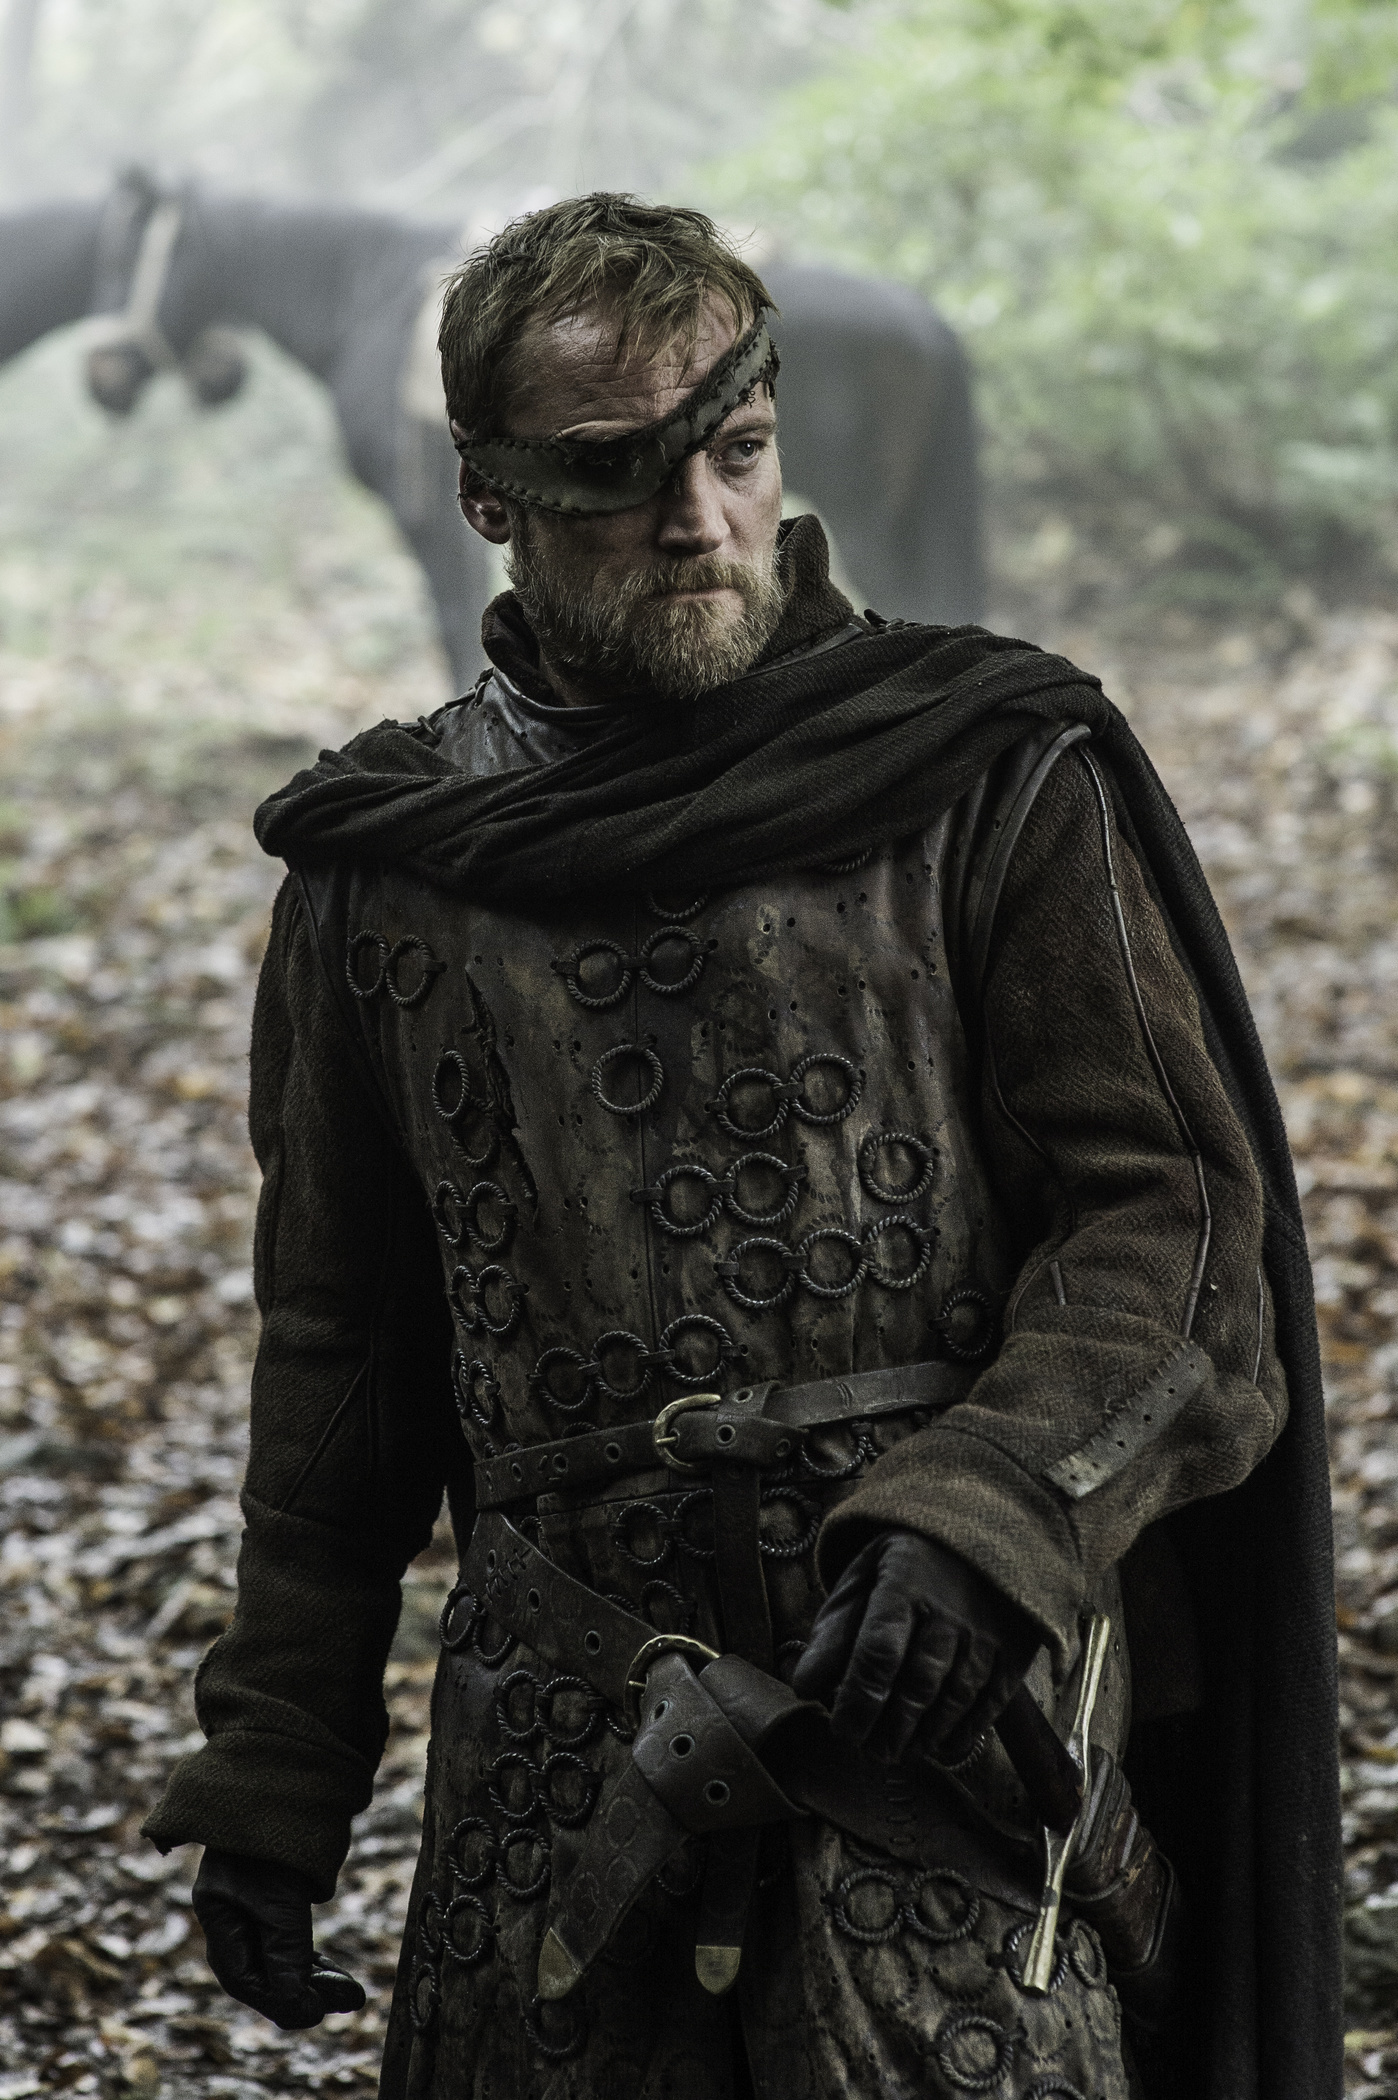 eye patch game of thrones character